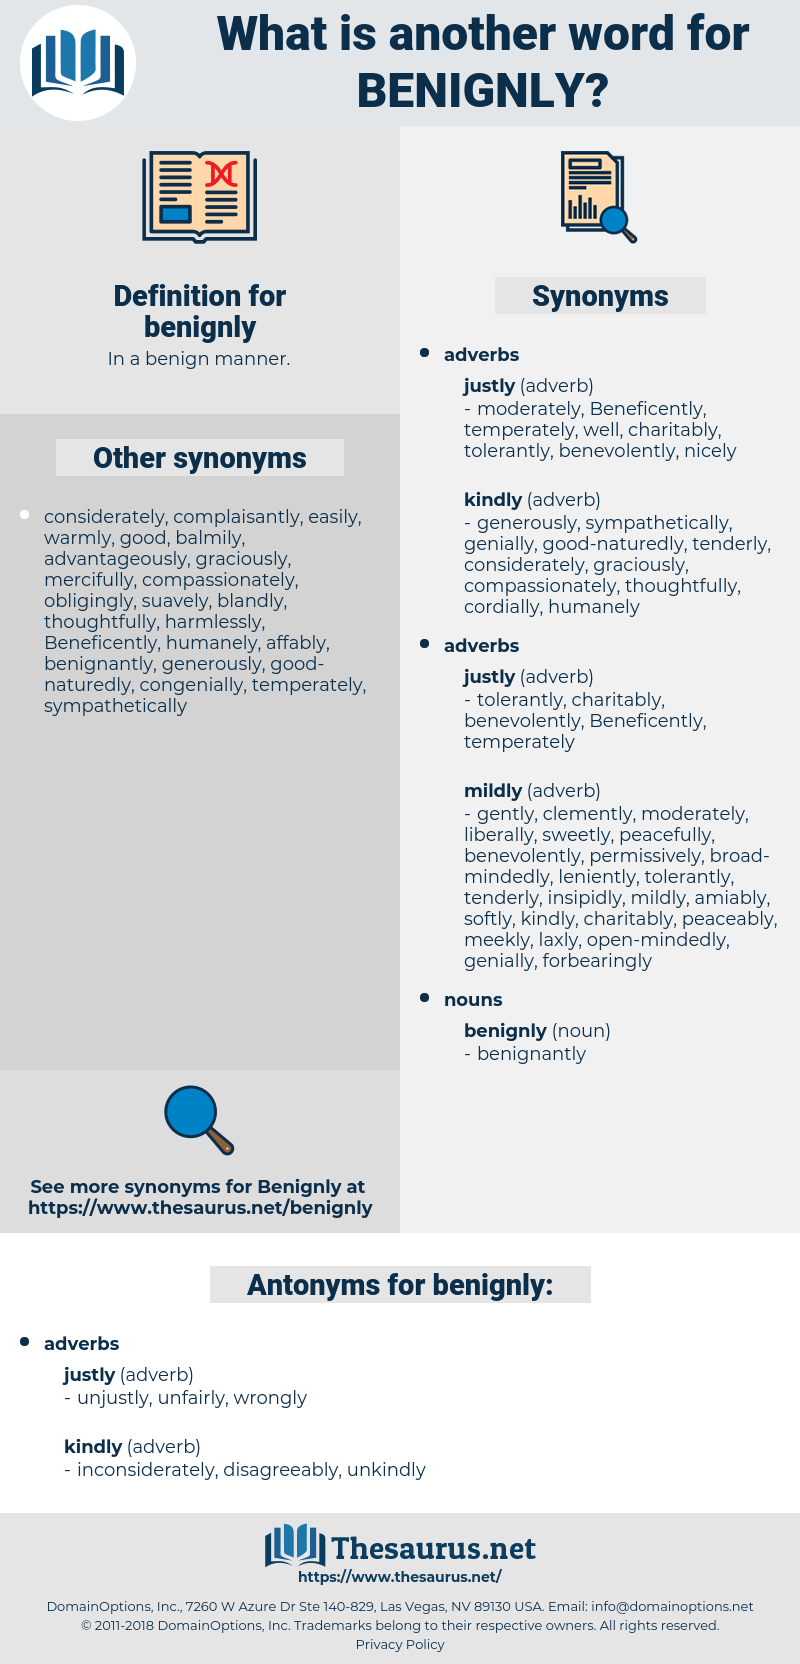 benignly, synonym benignly, another word for benignly, words like benignly, thesaurus benignly